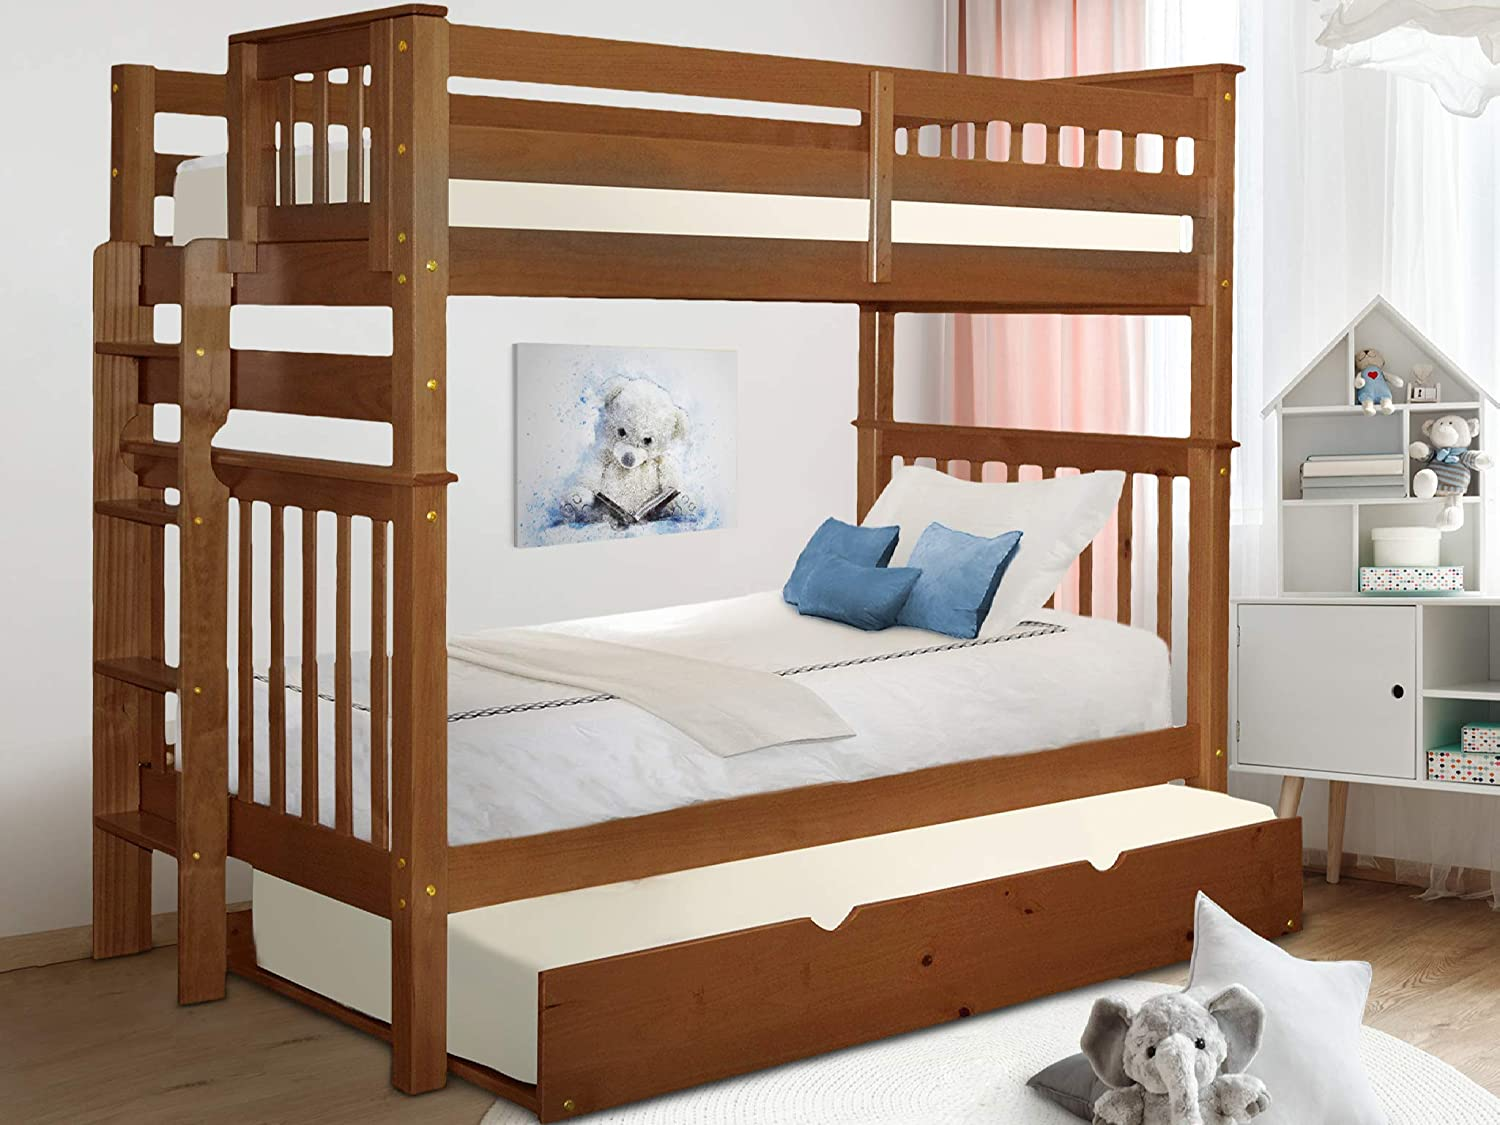 Bedz King Tall Bunk Beds Twin over Twin Mission Style with End Ladder and a Twin Trundle, Espresso